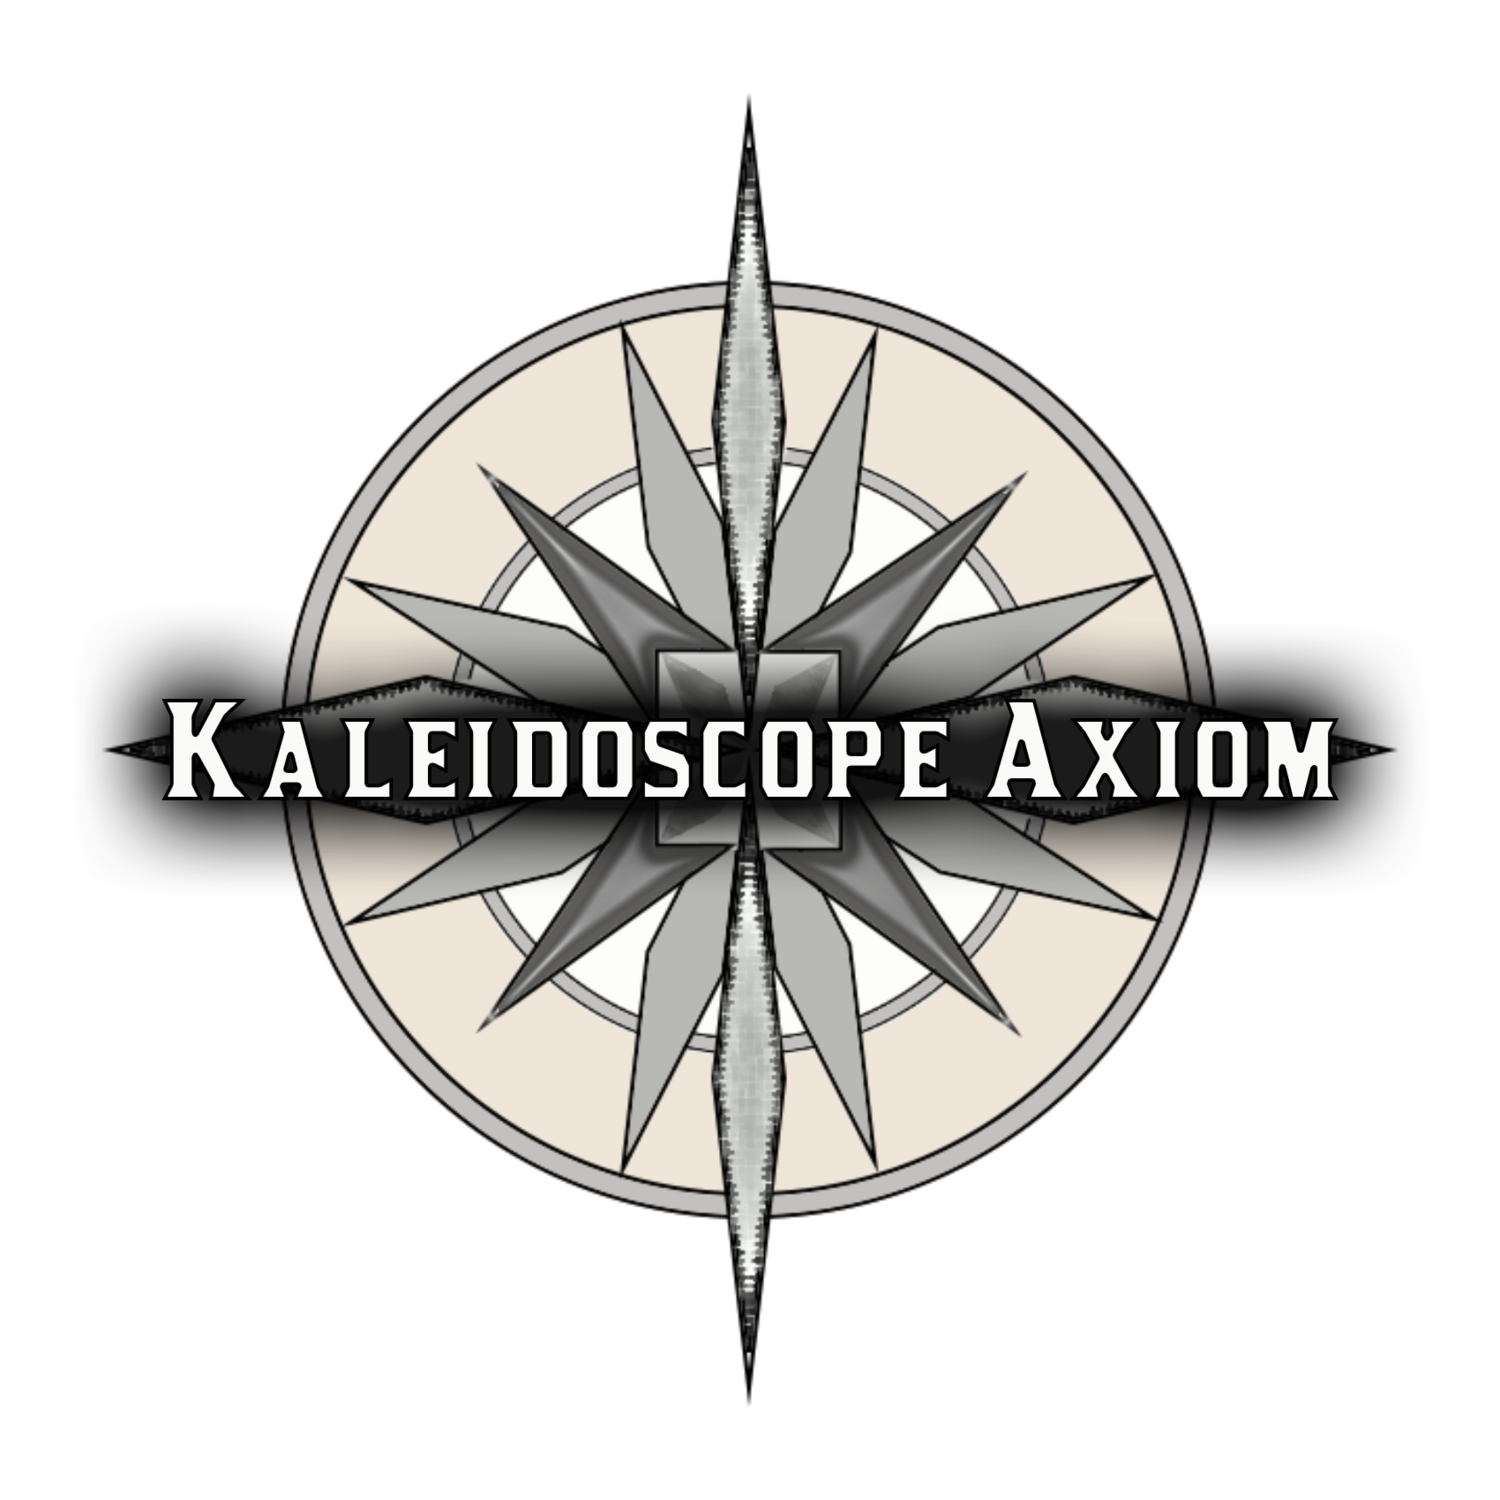 Kaleidoscope Axiom